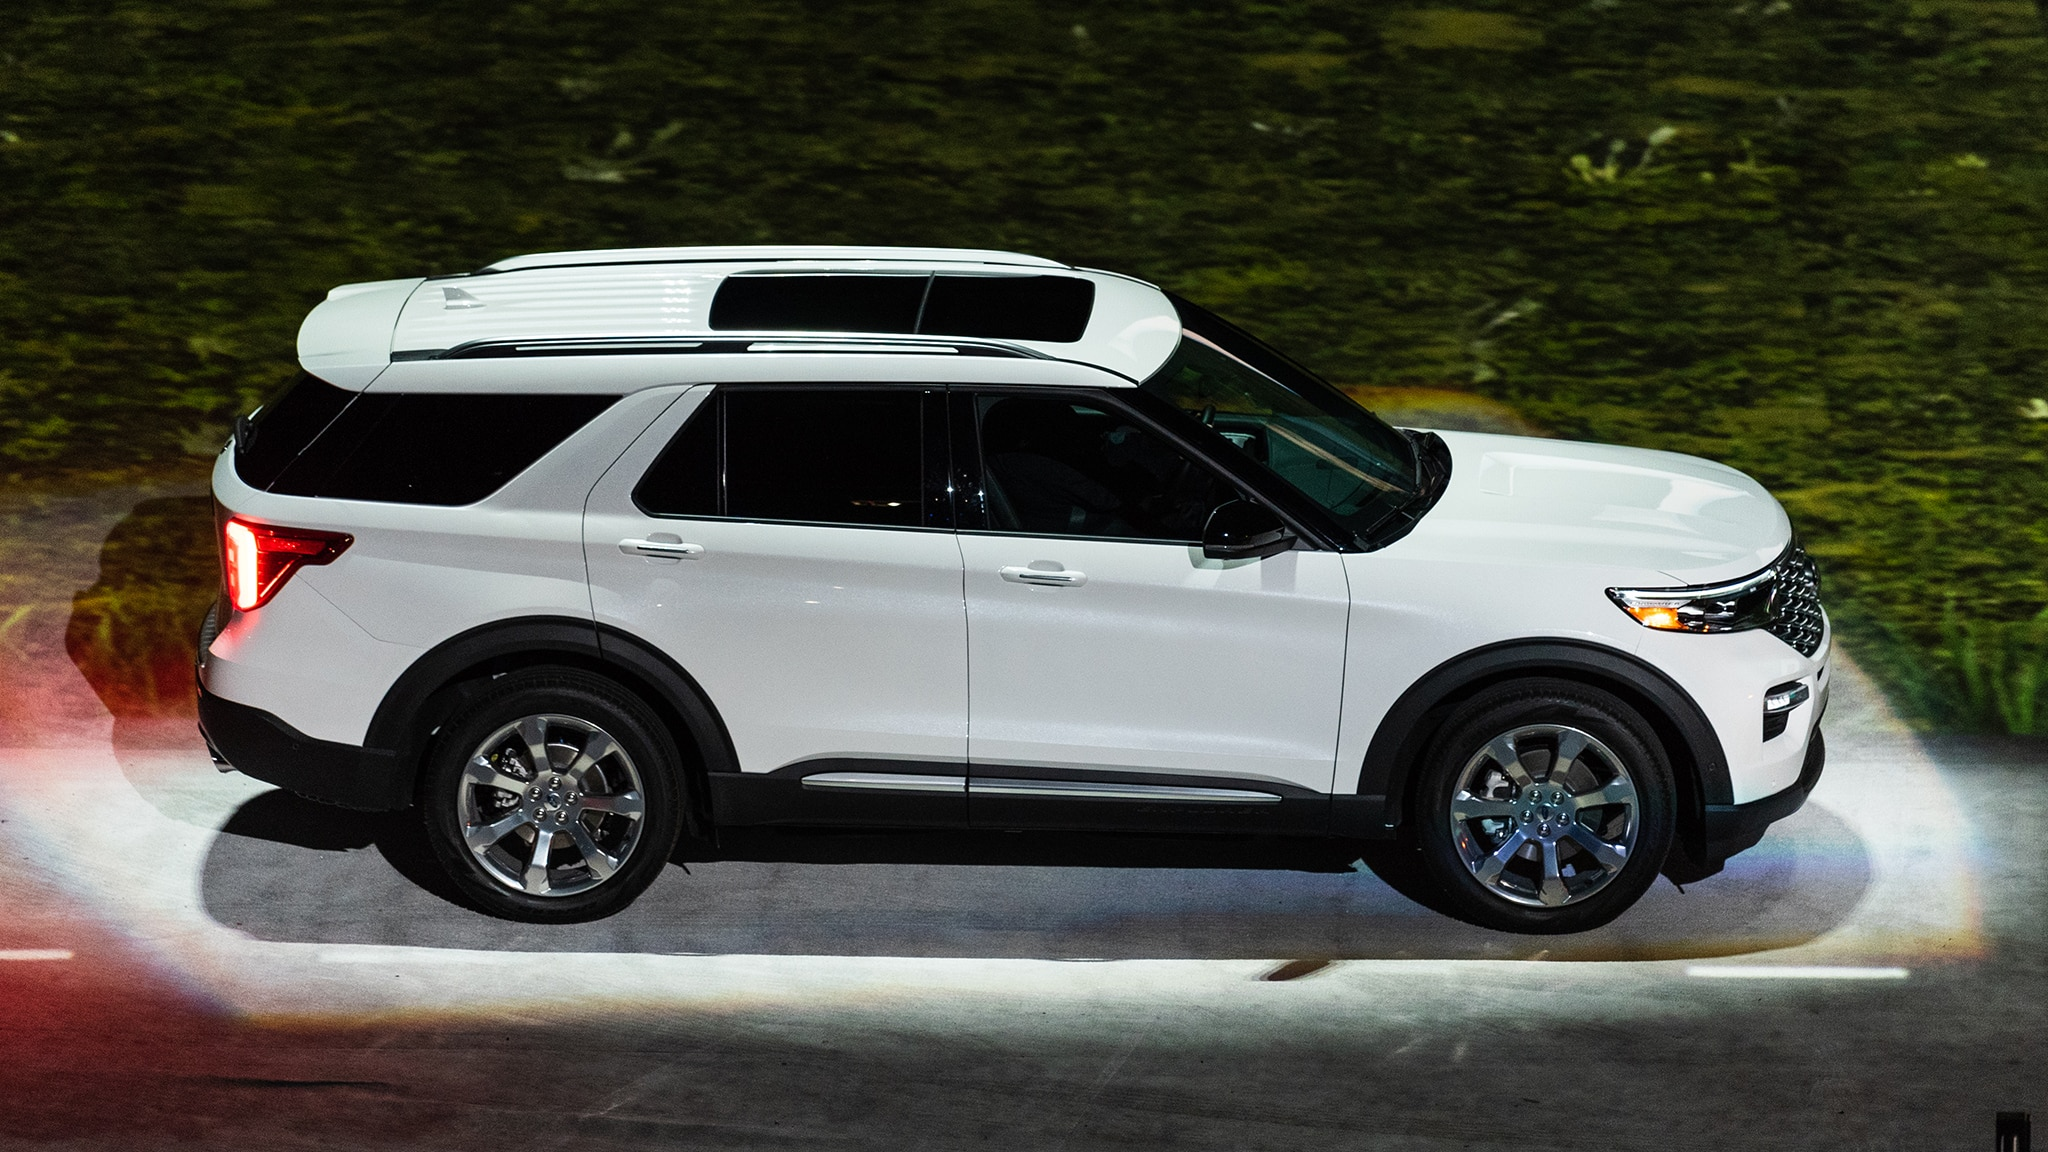 2020 Ford Explorer ST, Interior, Hybrid, Sport >> 2020 Ford Explorer Photos And Details What You Need To Know